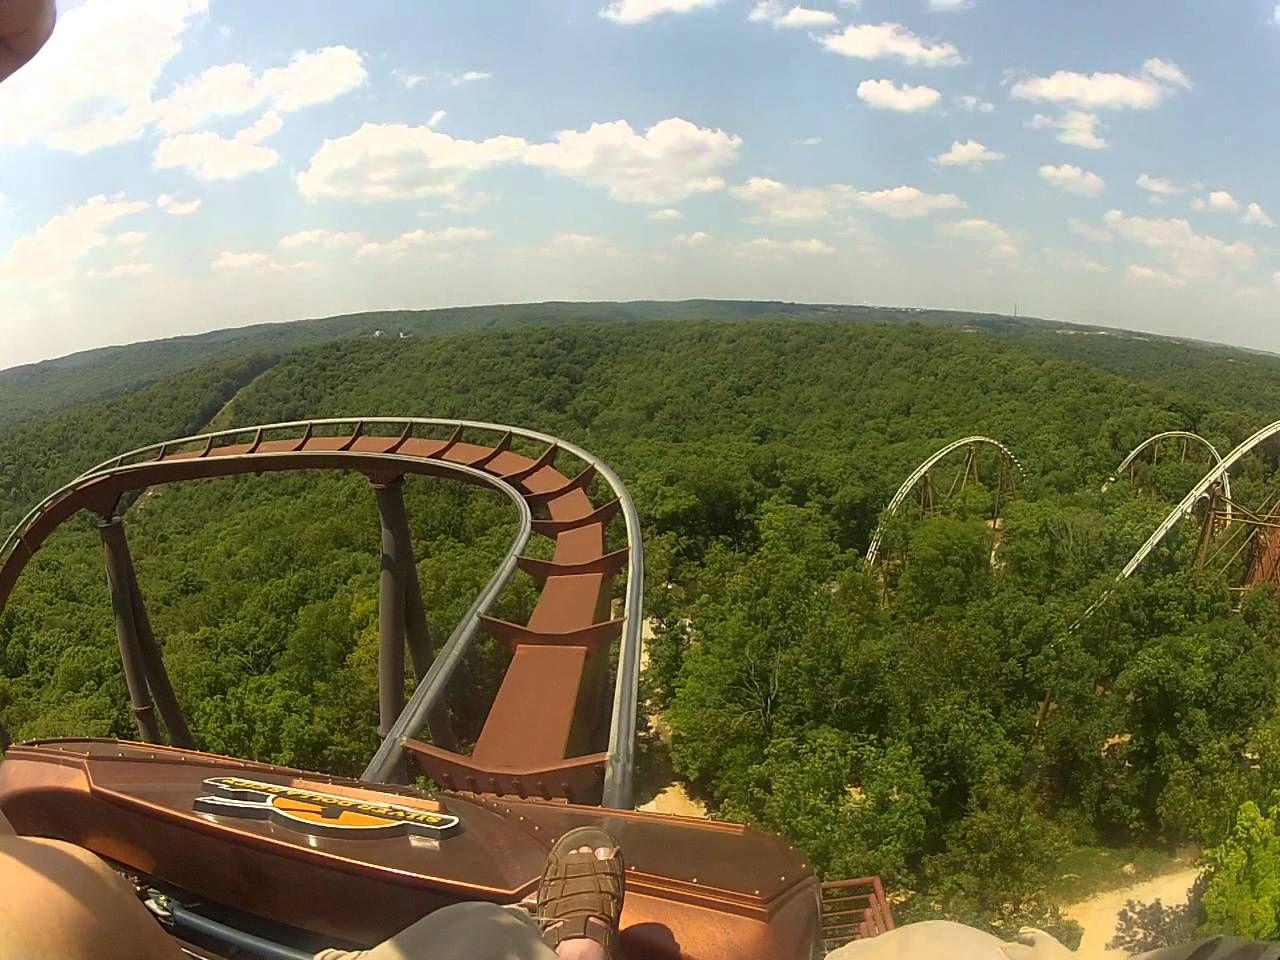 Wildfire Rollercoaster At Silver Dollar City Branson Mo Front Seat Pov Silver Dollar City Branson Vacation Roller Coaster